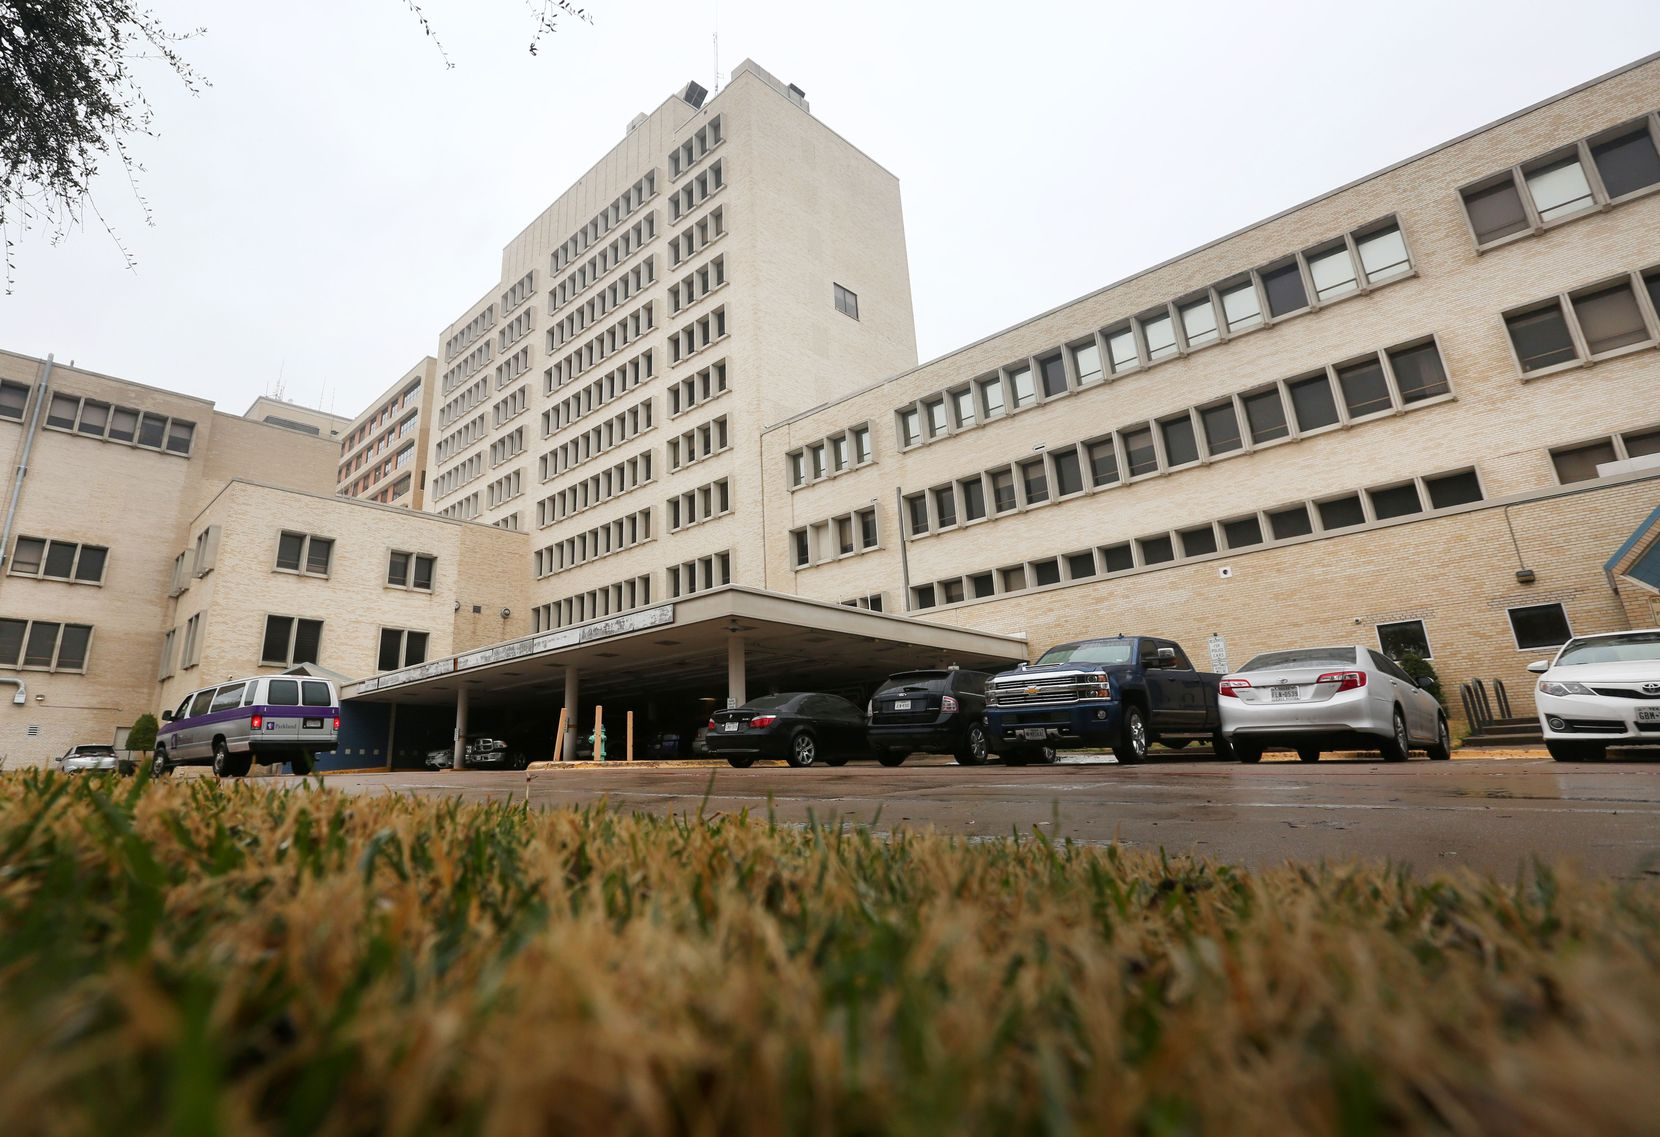 The former Parkland Hospital buildings date back to the 1950s.